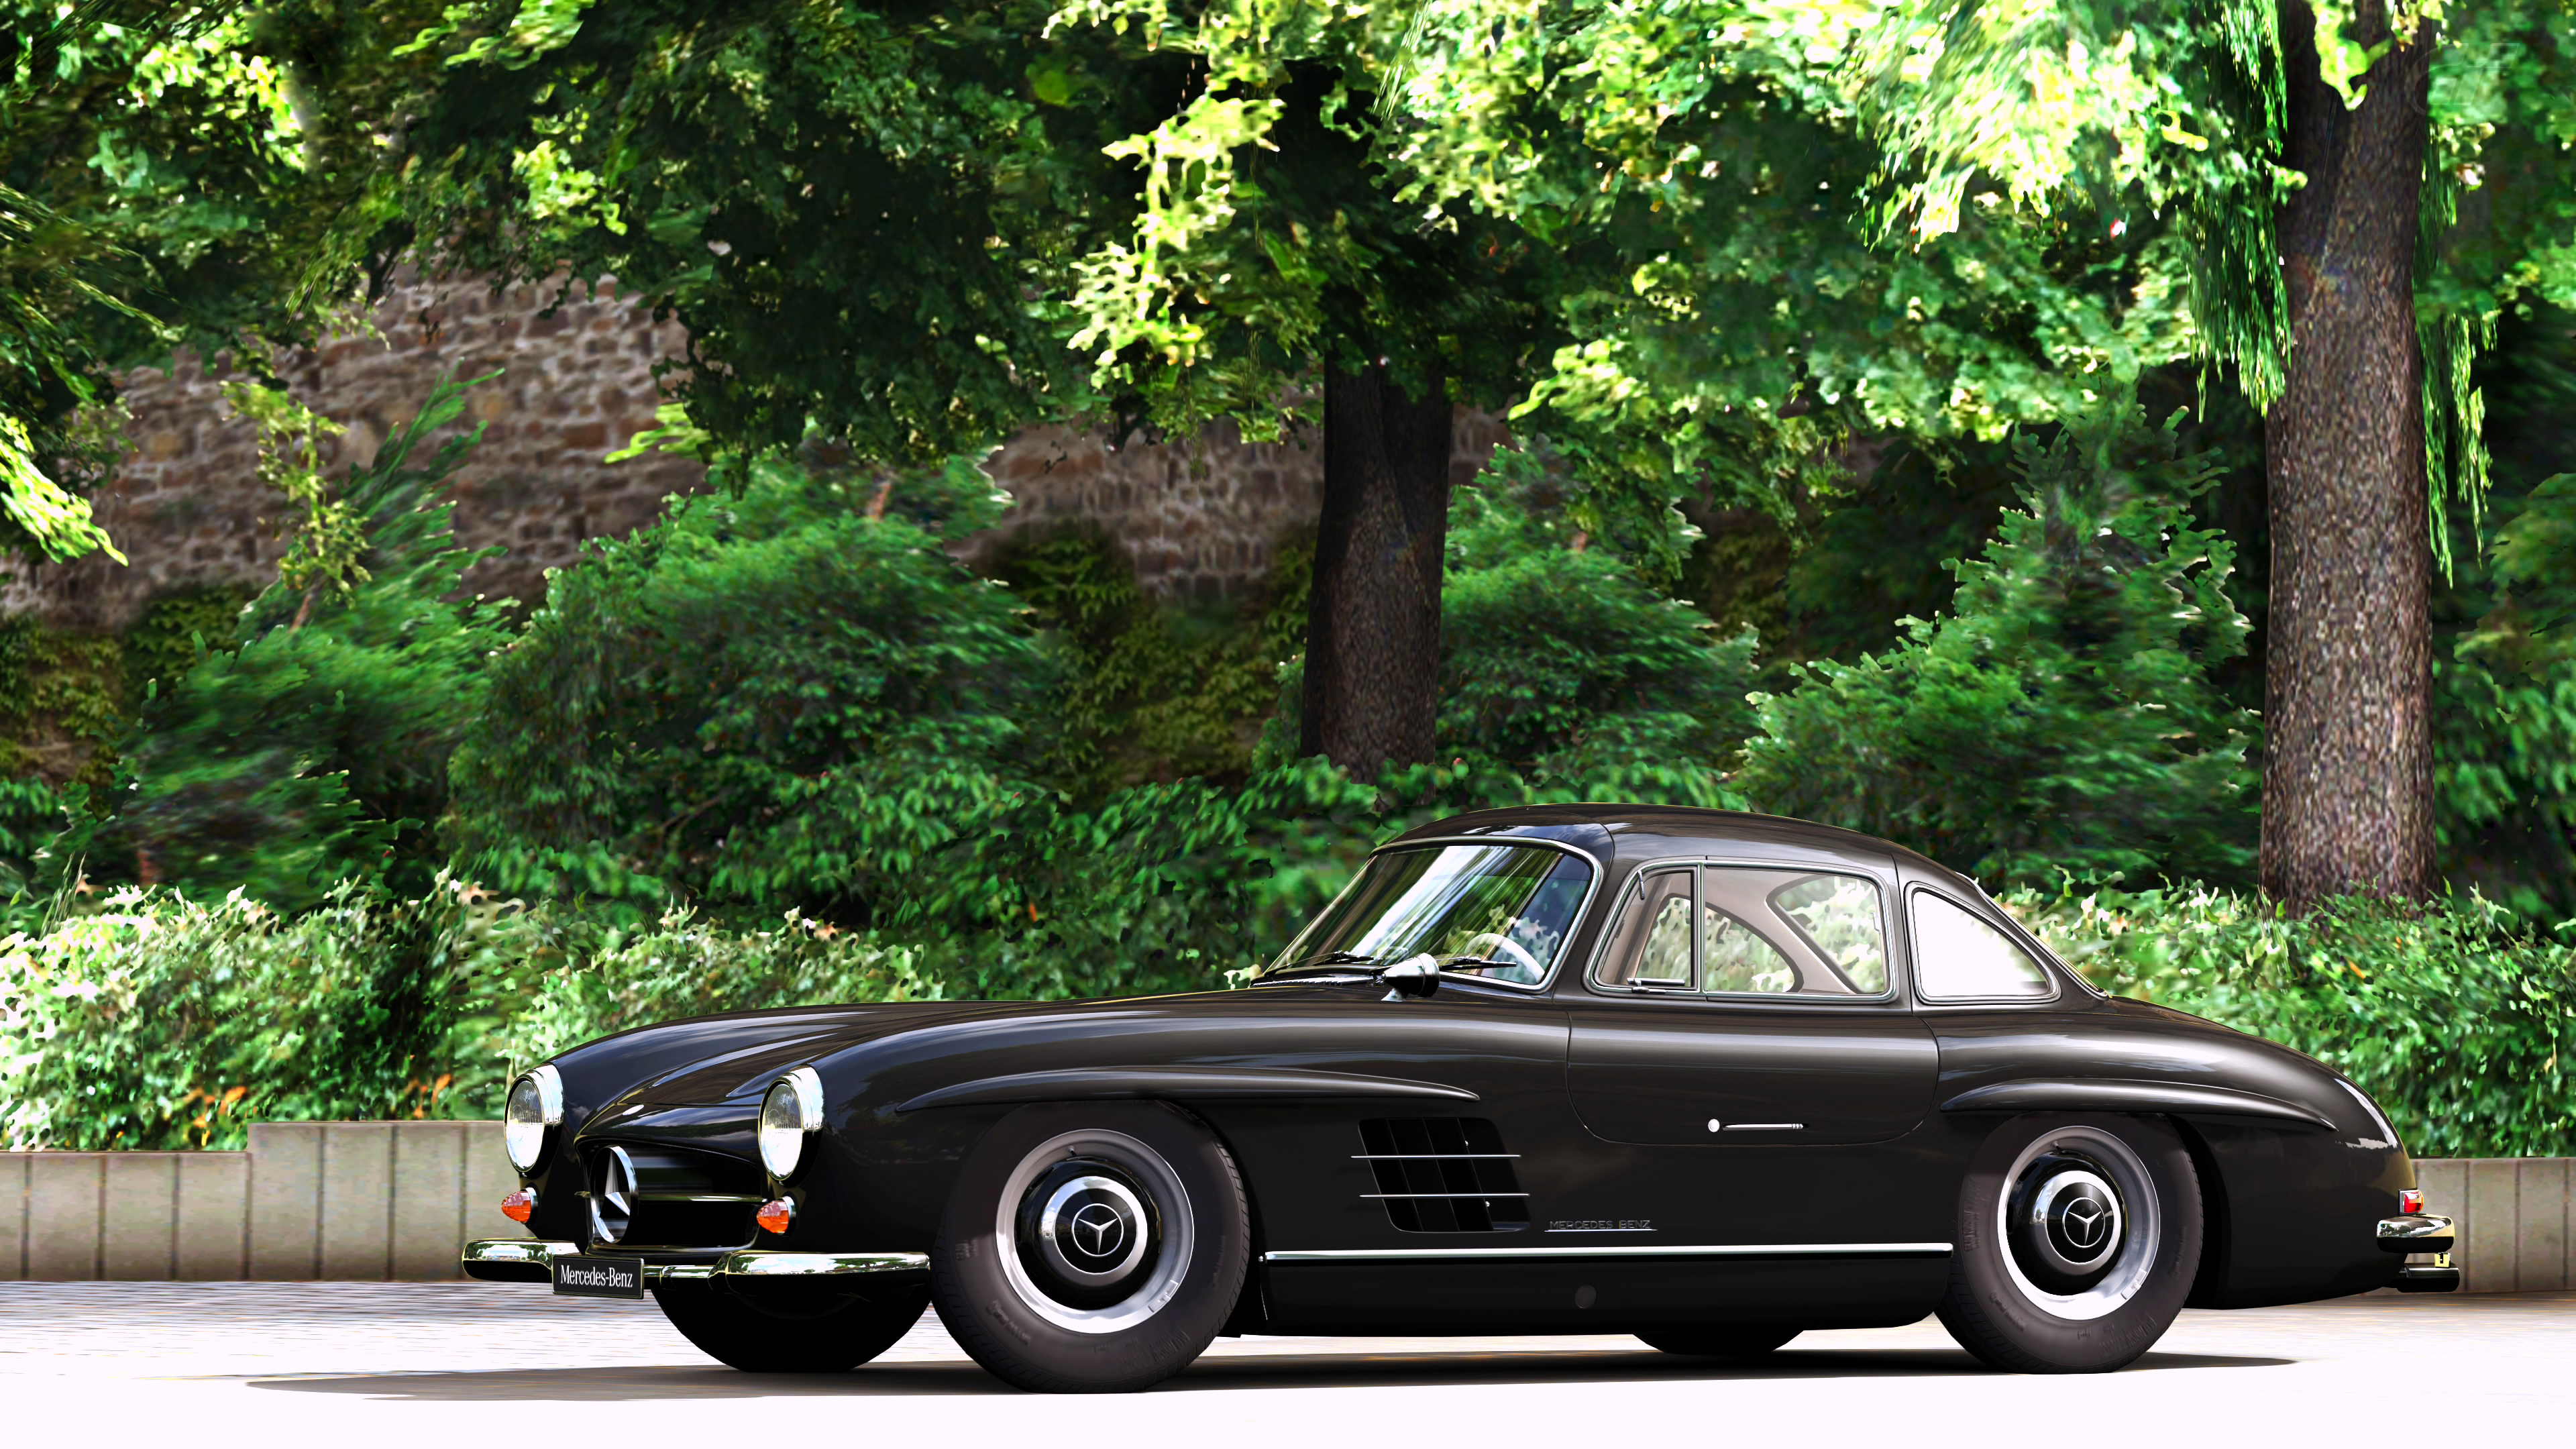 300sl 254 wallpaper - photo #23